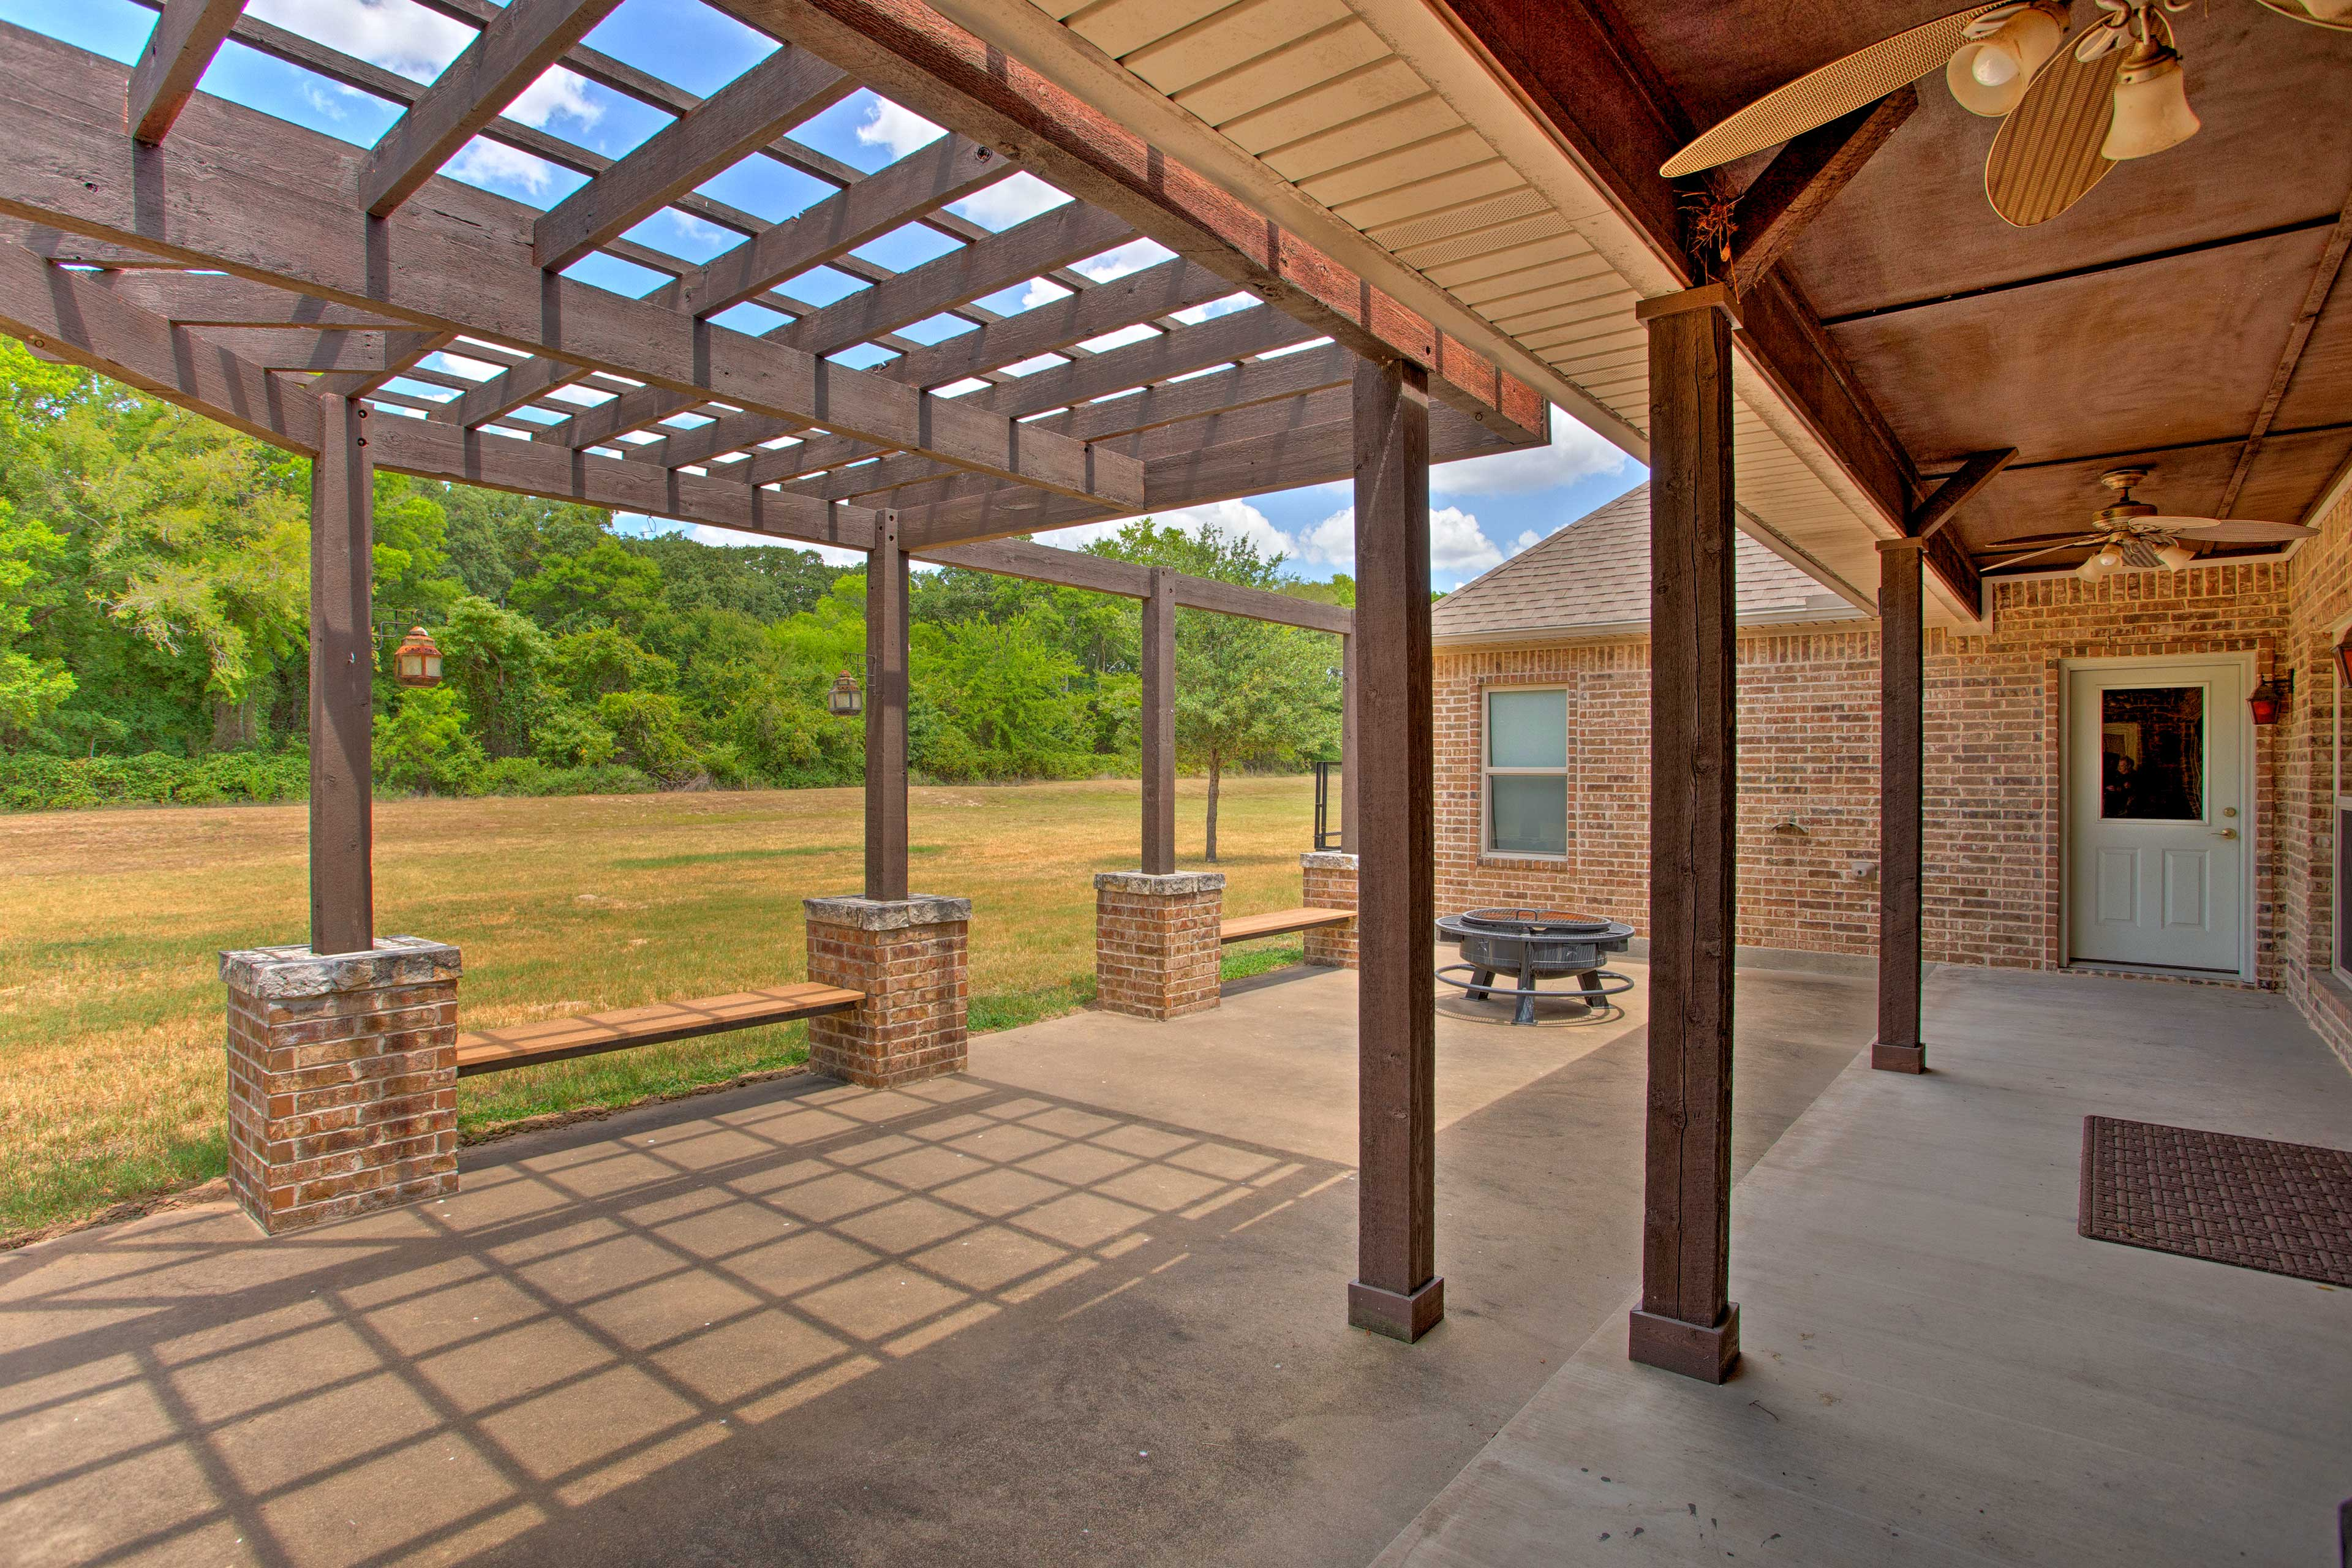 The patio is perfect for hosting backyard barbecues.